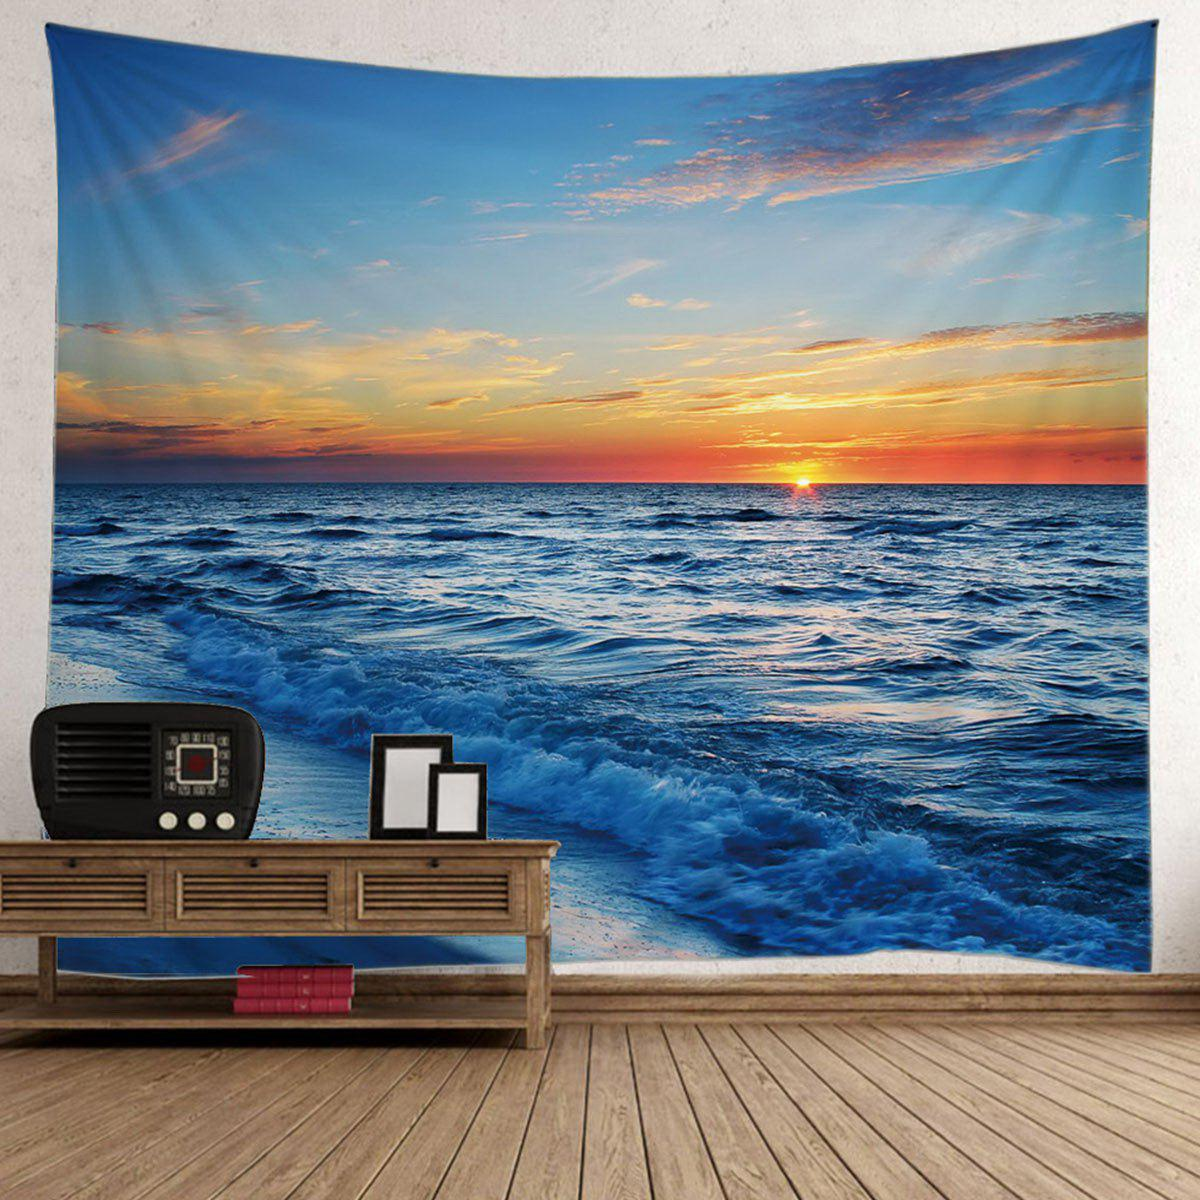 Seaside Sunset Wall Decor Tapestry sunset wooden bridge wall decor waterproof tapestry